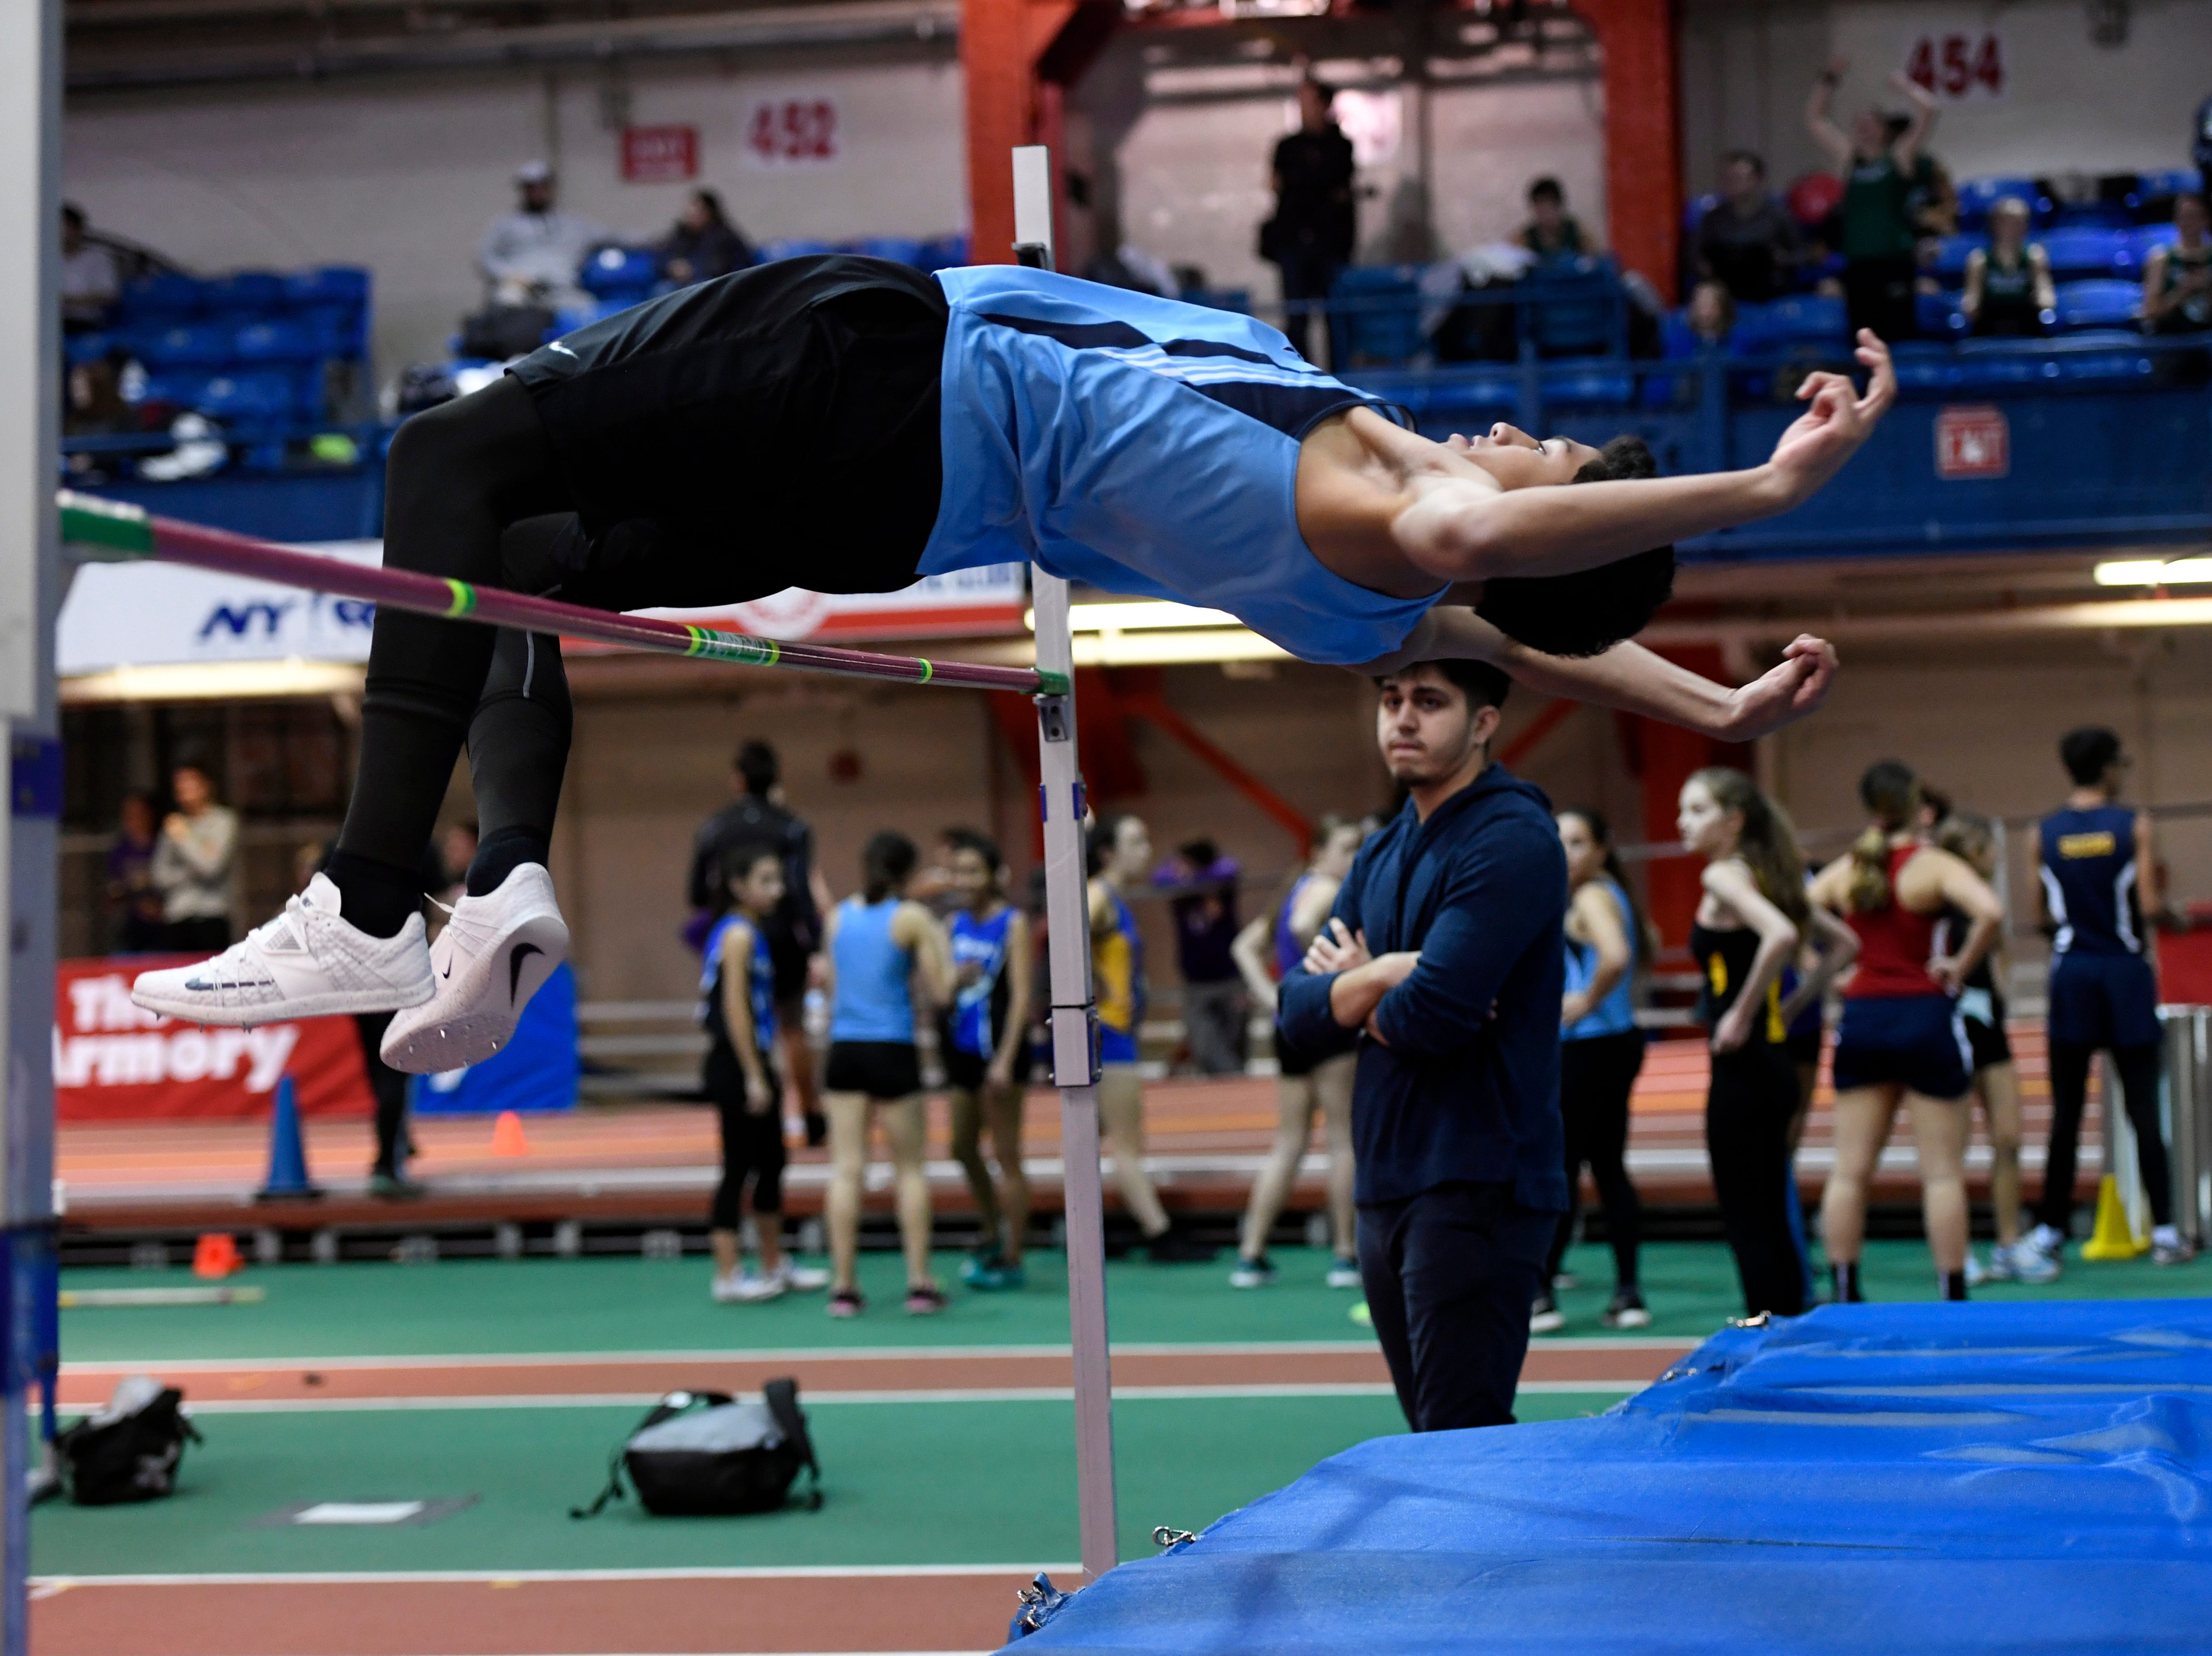 Frank Avalo of Waldwick placed second in the high jump during the NJIC track meet at the Armory Track on Monday, Jan. 7, 2019, in New York.